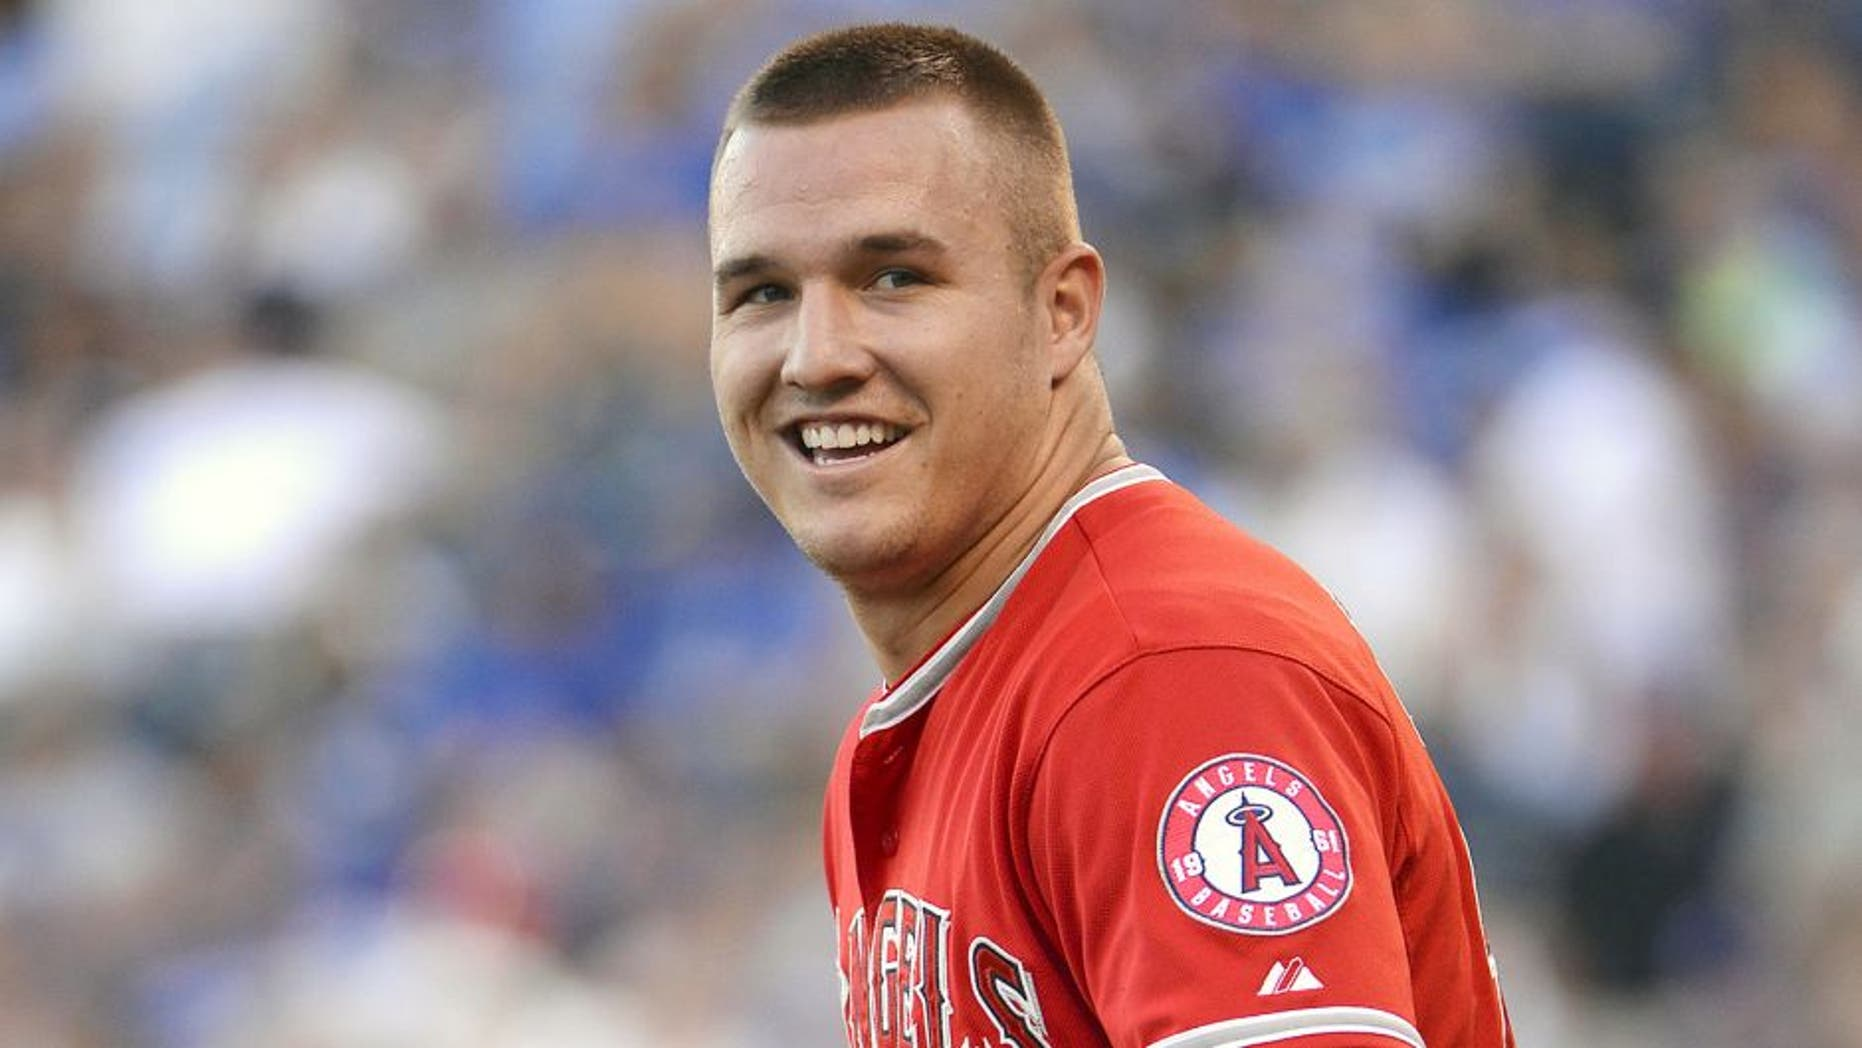 Aug 13, 2015; Kansas City, MO, USA; Los Angeles Angels center fielder Mike Trout (27) walks to the outfield in the first inning against the Kansas City Royals at Kauffman Stadium. Mandatory Credit: John Rieger-USA TODAY Sports